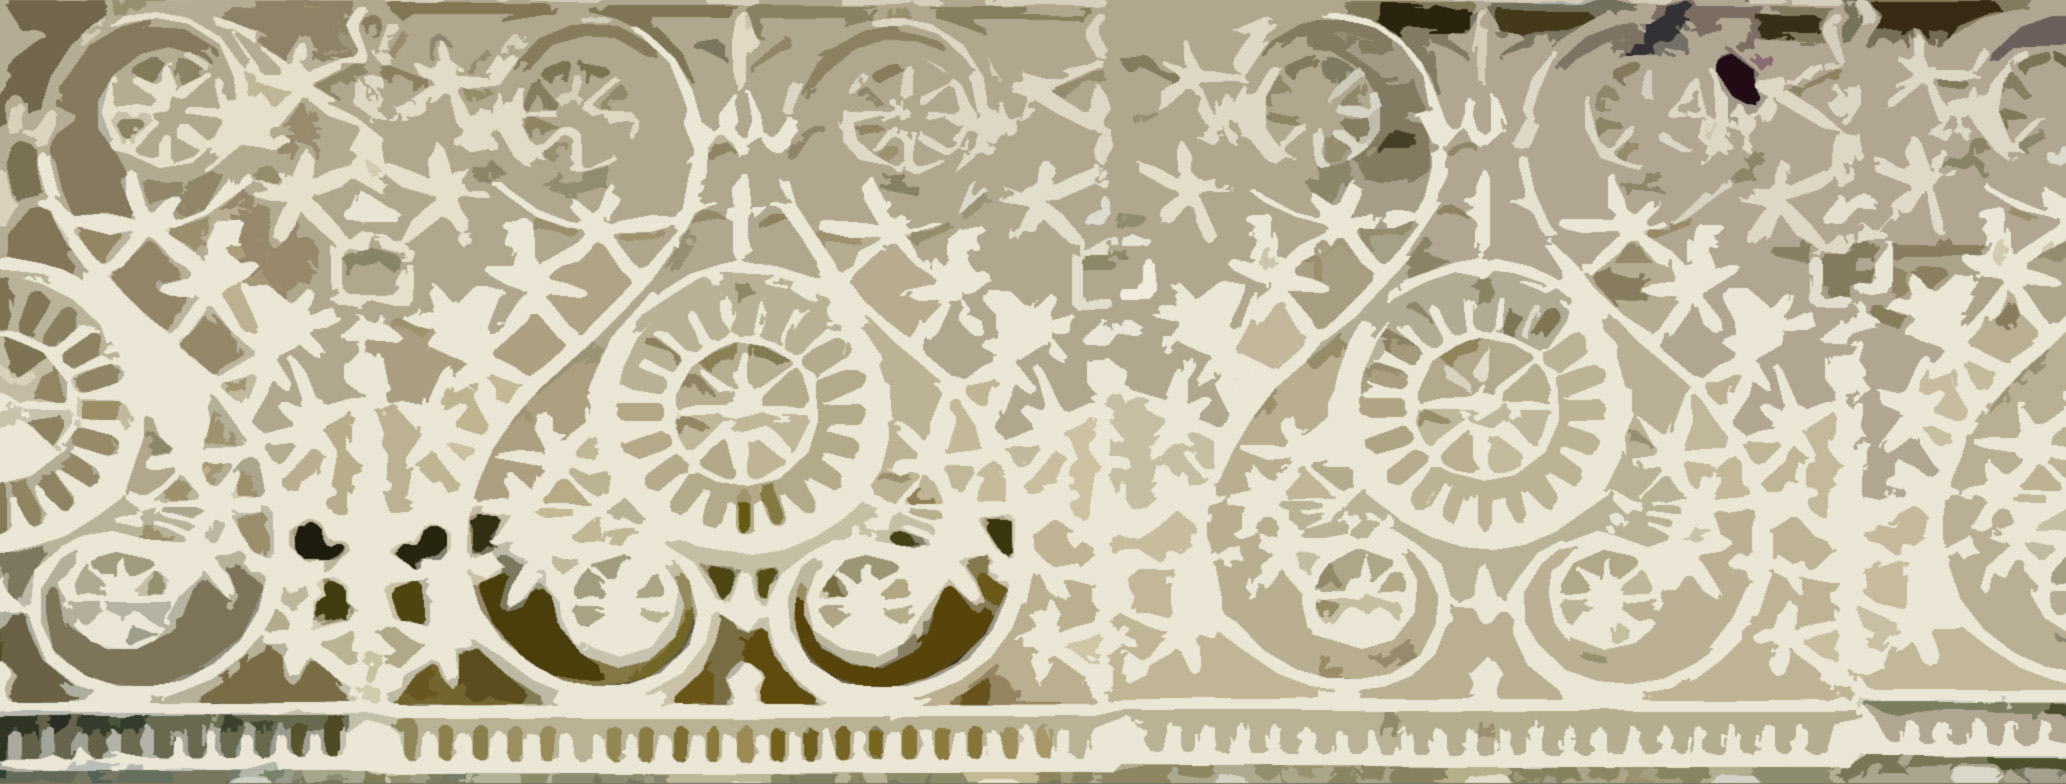 White cast iron panel free backgrounds and textures cr103 cast iron fence panels baanklon Choice Image